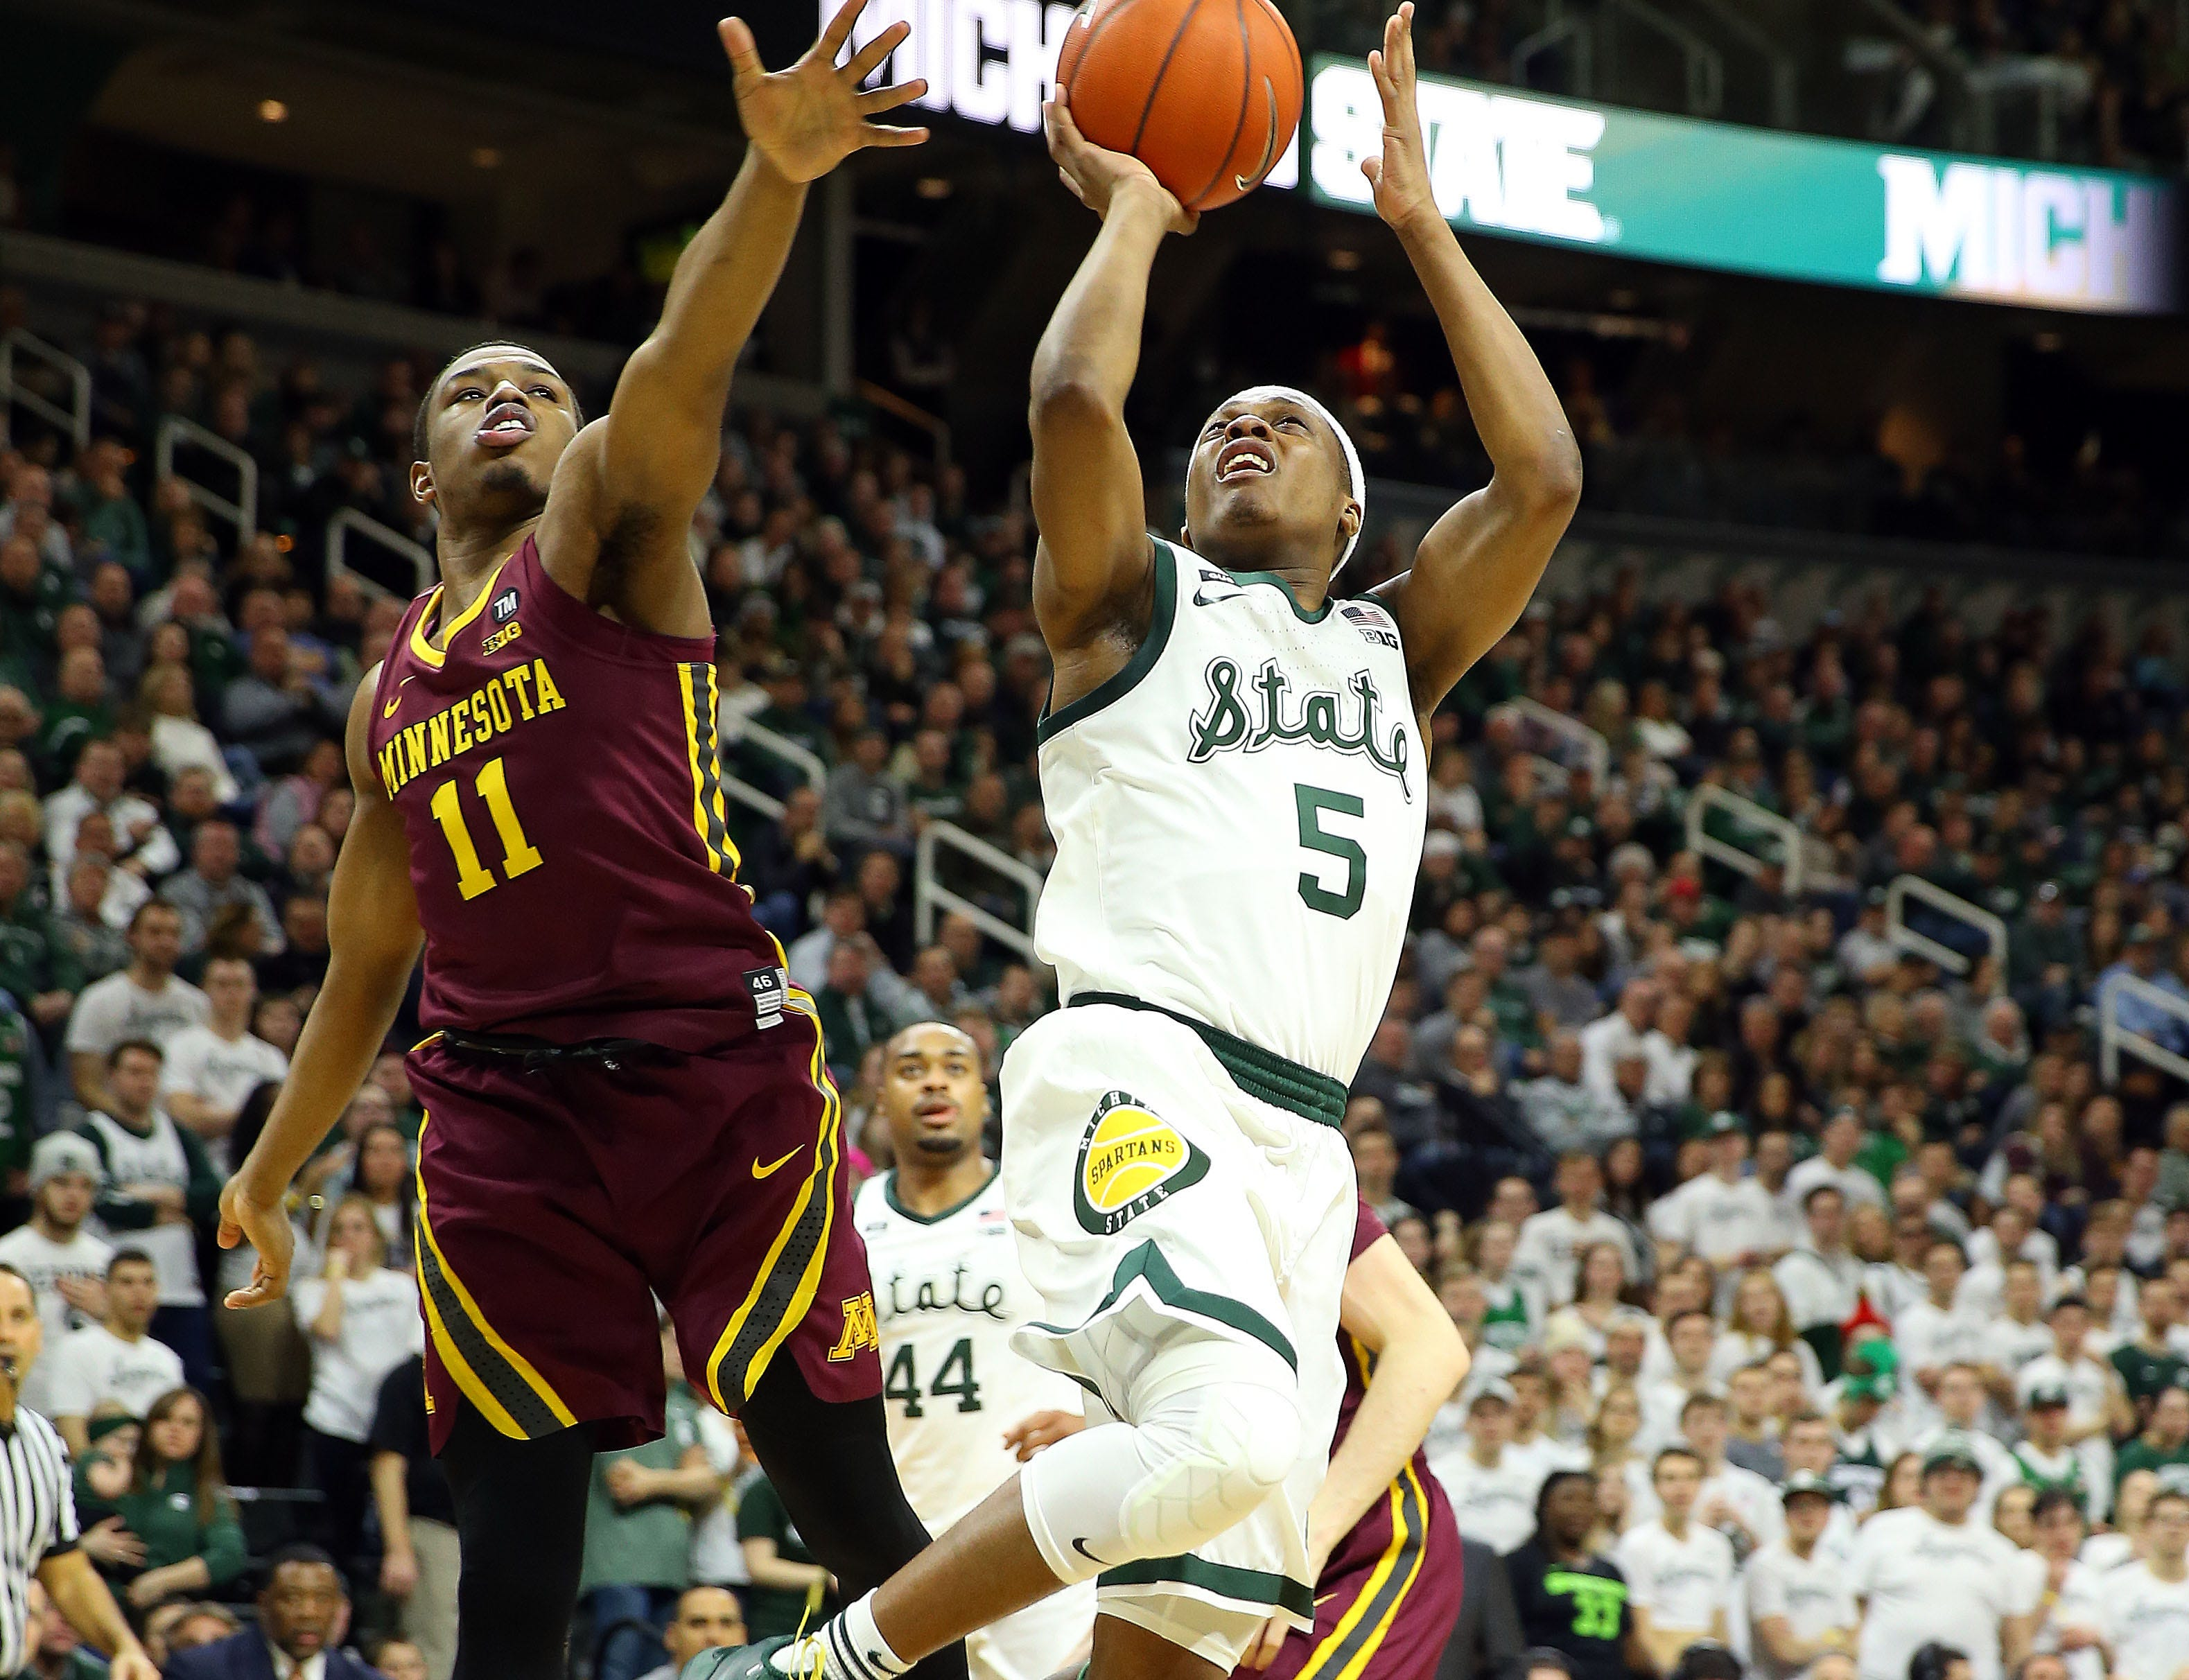 Feb 9, 2019; East Lansing, MI, USA; Michigan State Spartans guard Cassius Winston (5) shoots against Minnesota Golden Gophers guard Isaiah Washington (11) during the second half at the Breslin Center. Mandatory Credit: Mike Carter-USA TODAY Sports